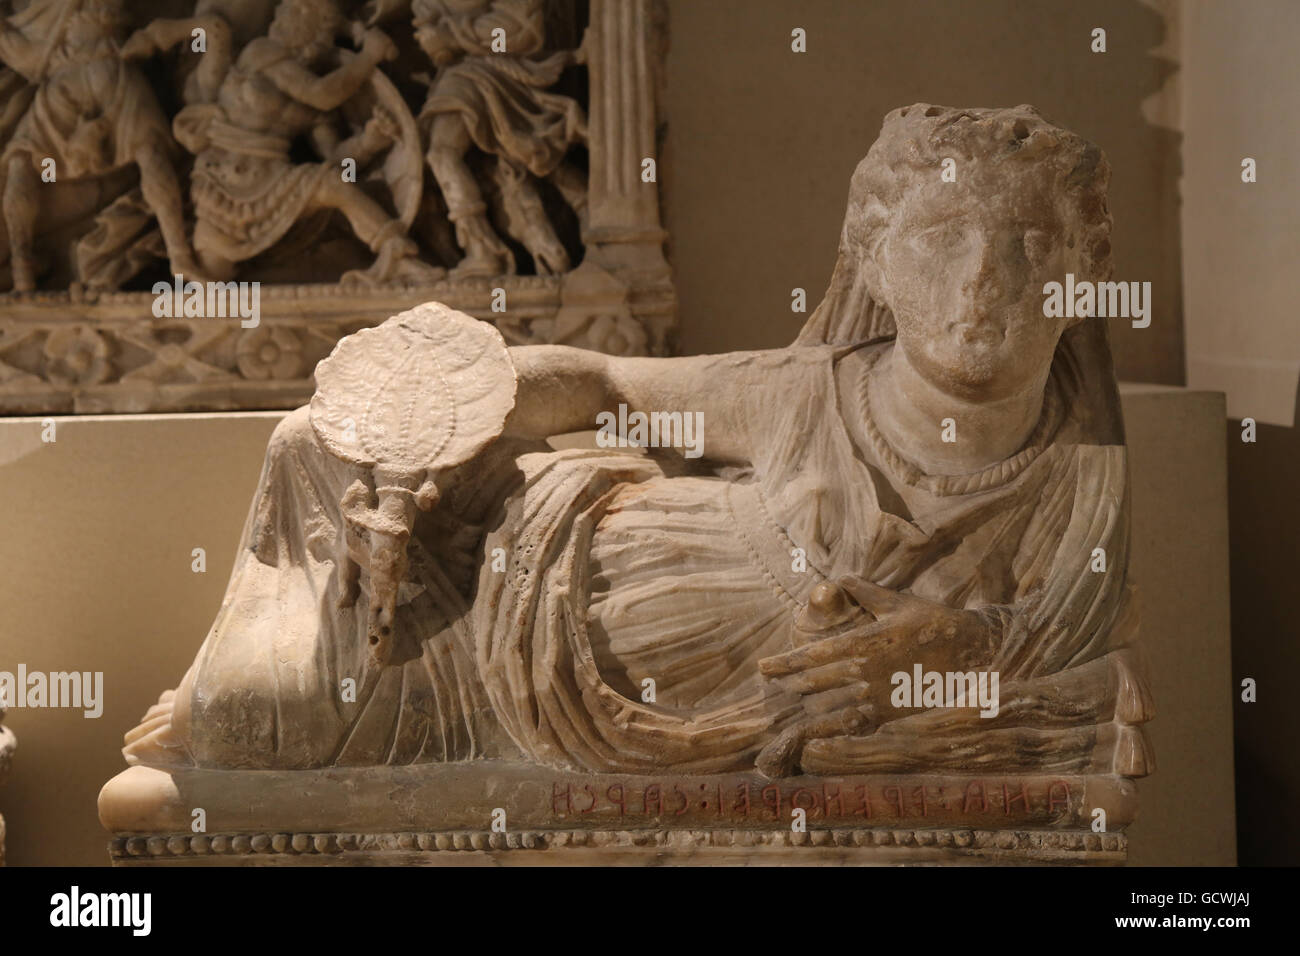 Etruscan art. Cinerary urn. Effigy of the deceased. Woman wearing jewelry and holding a fan in her right hand and, - Stock Image